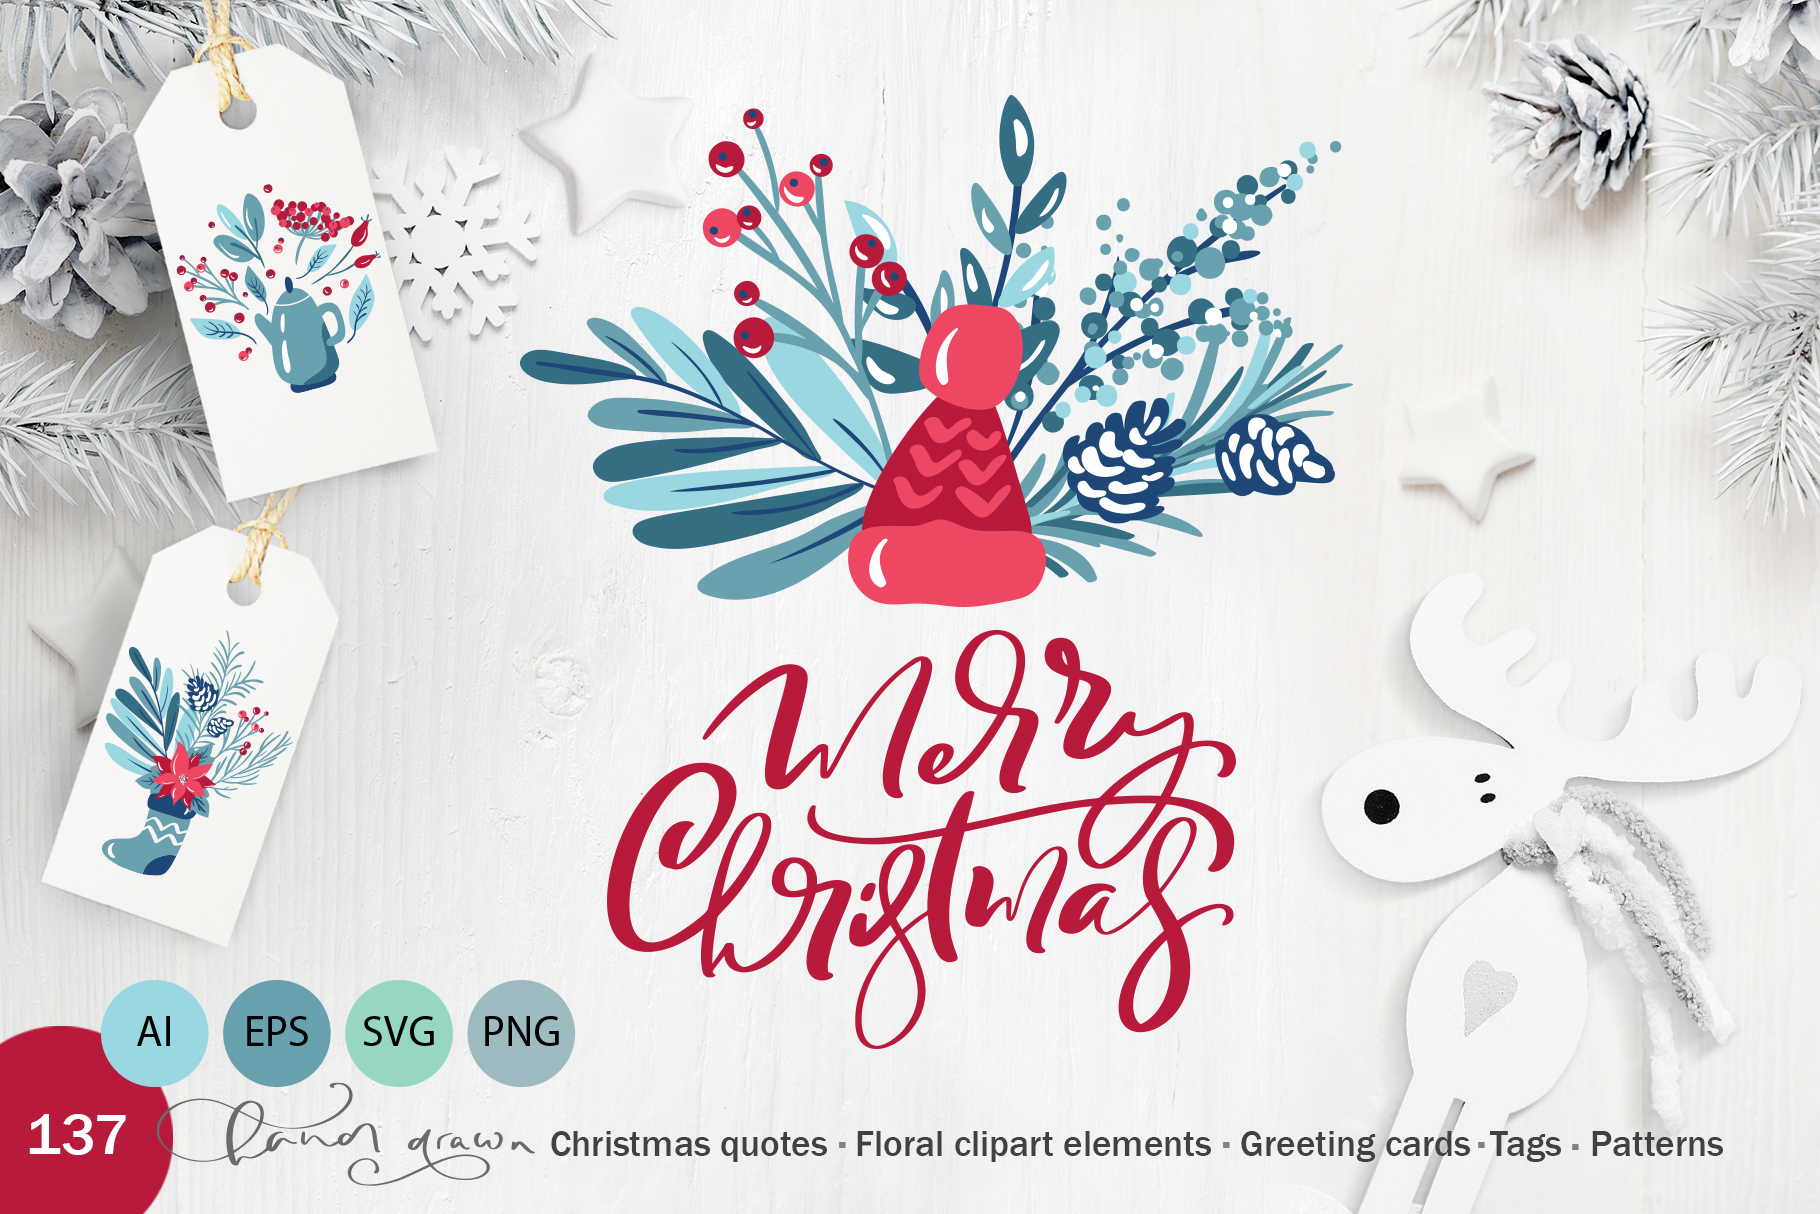 Christmas floral holiday elements example image 1